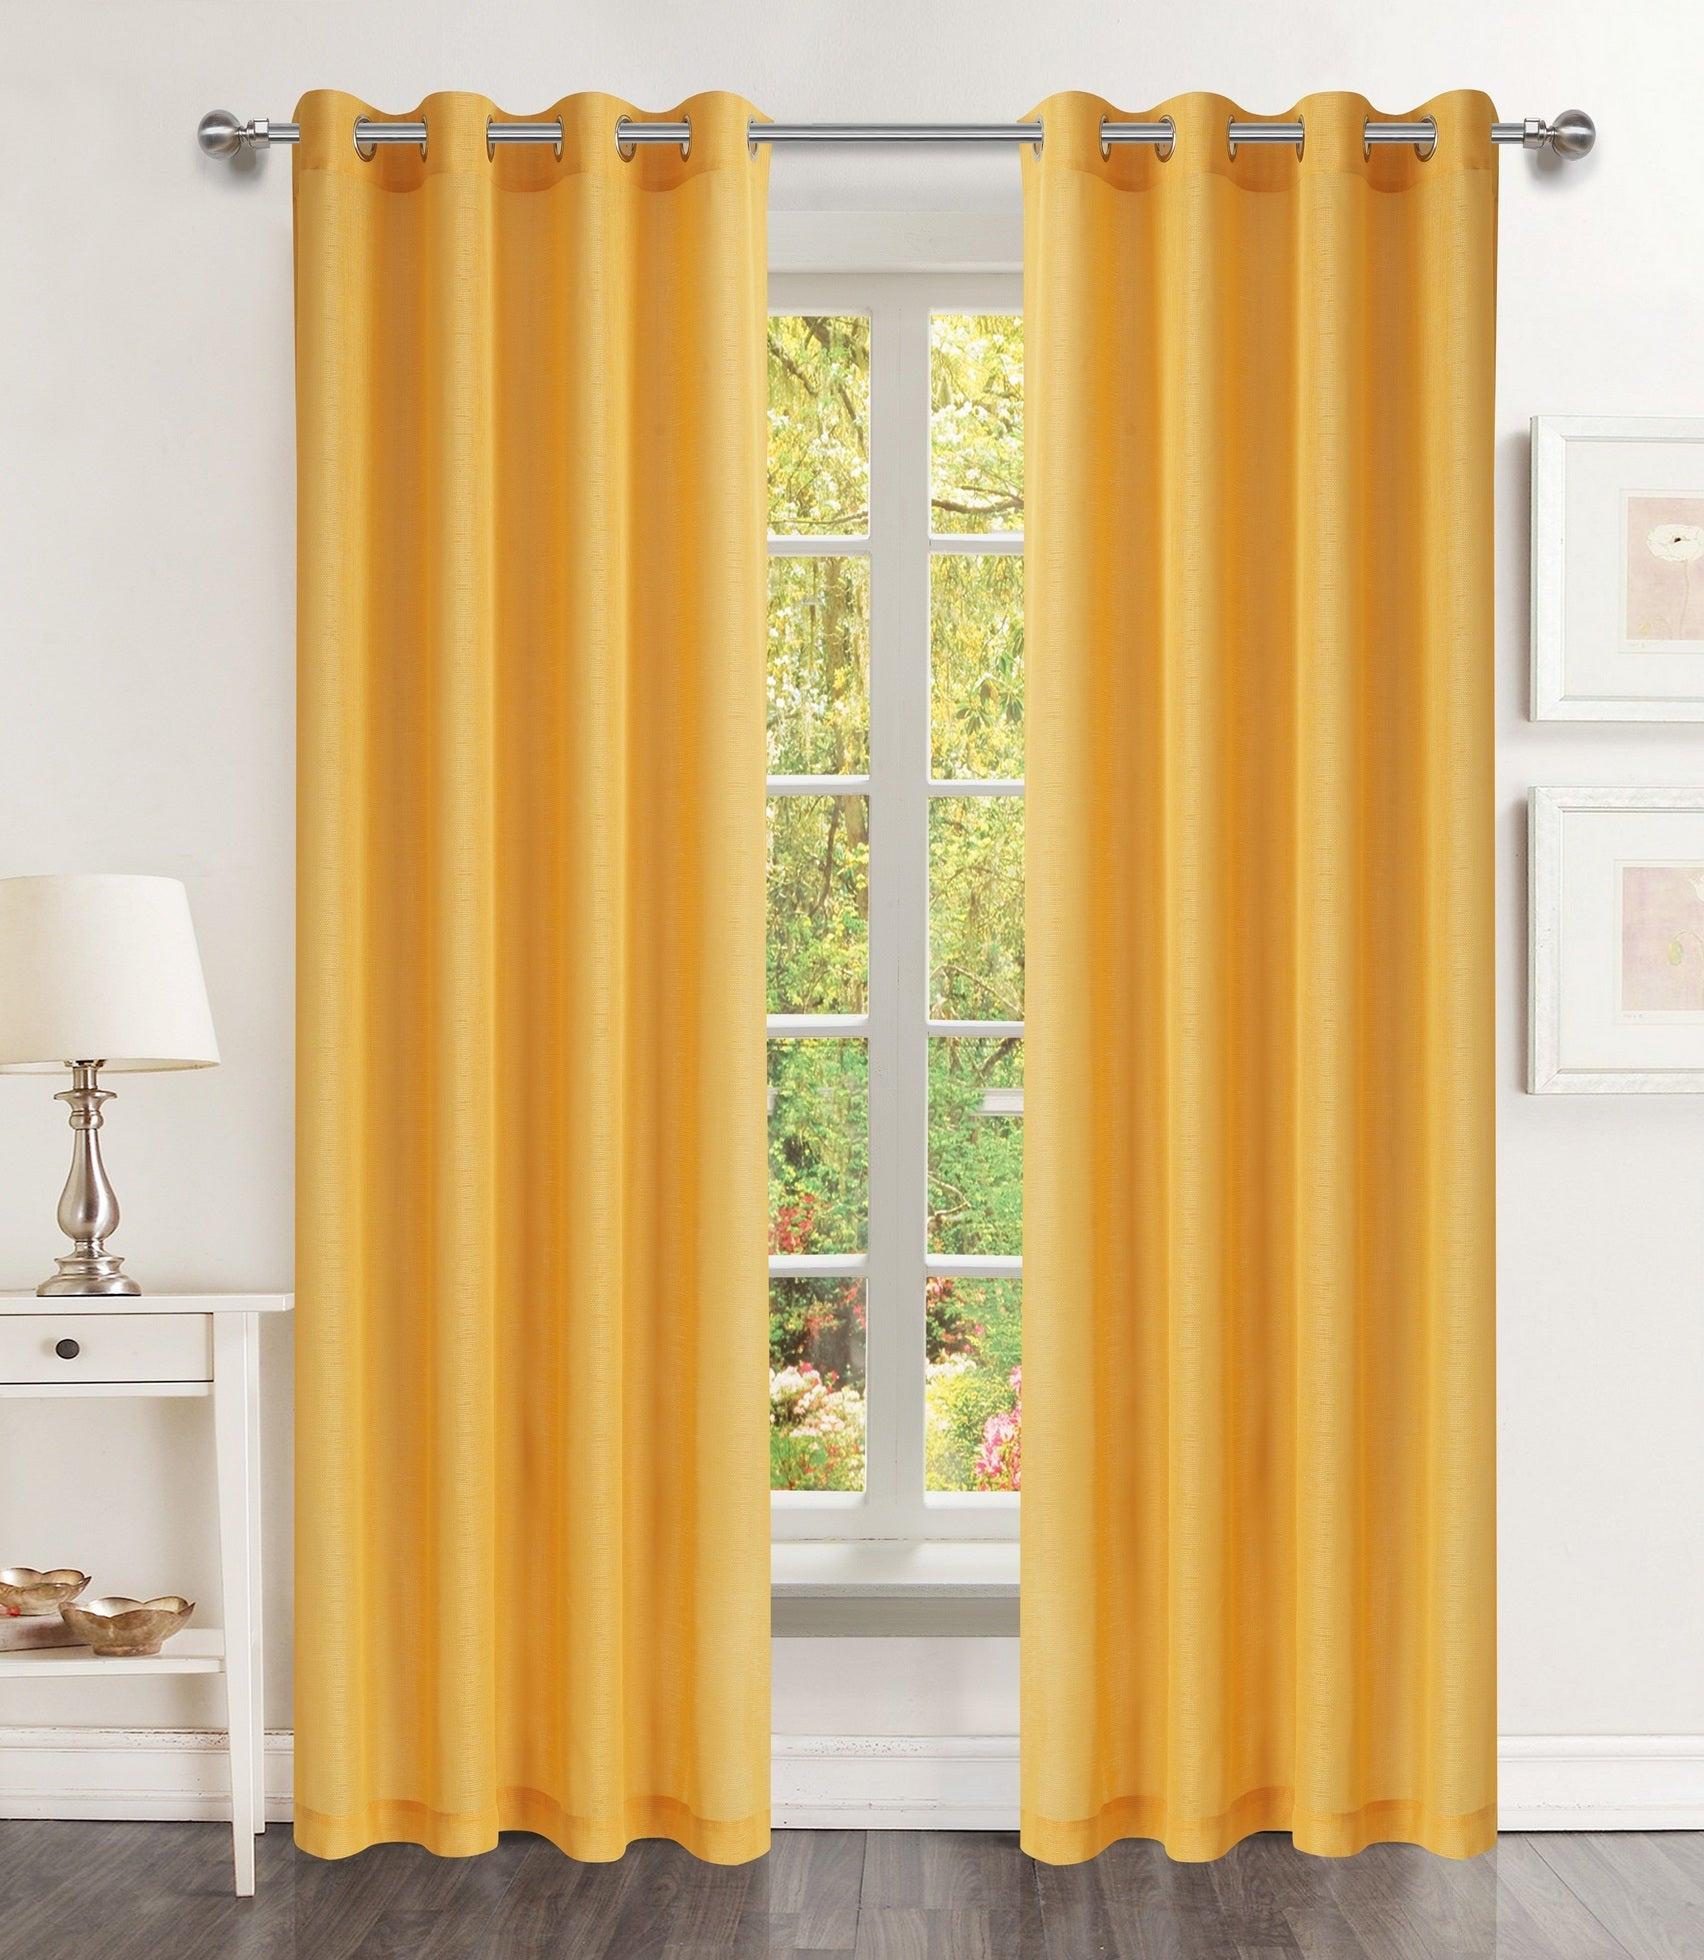 Lillies Solid Grommet Panel - 054x084 Mustard Yellow C46077- Marburn Curtains